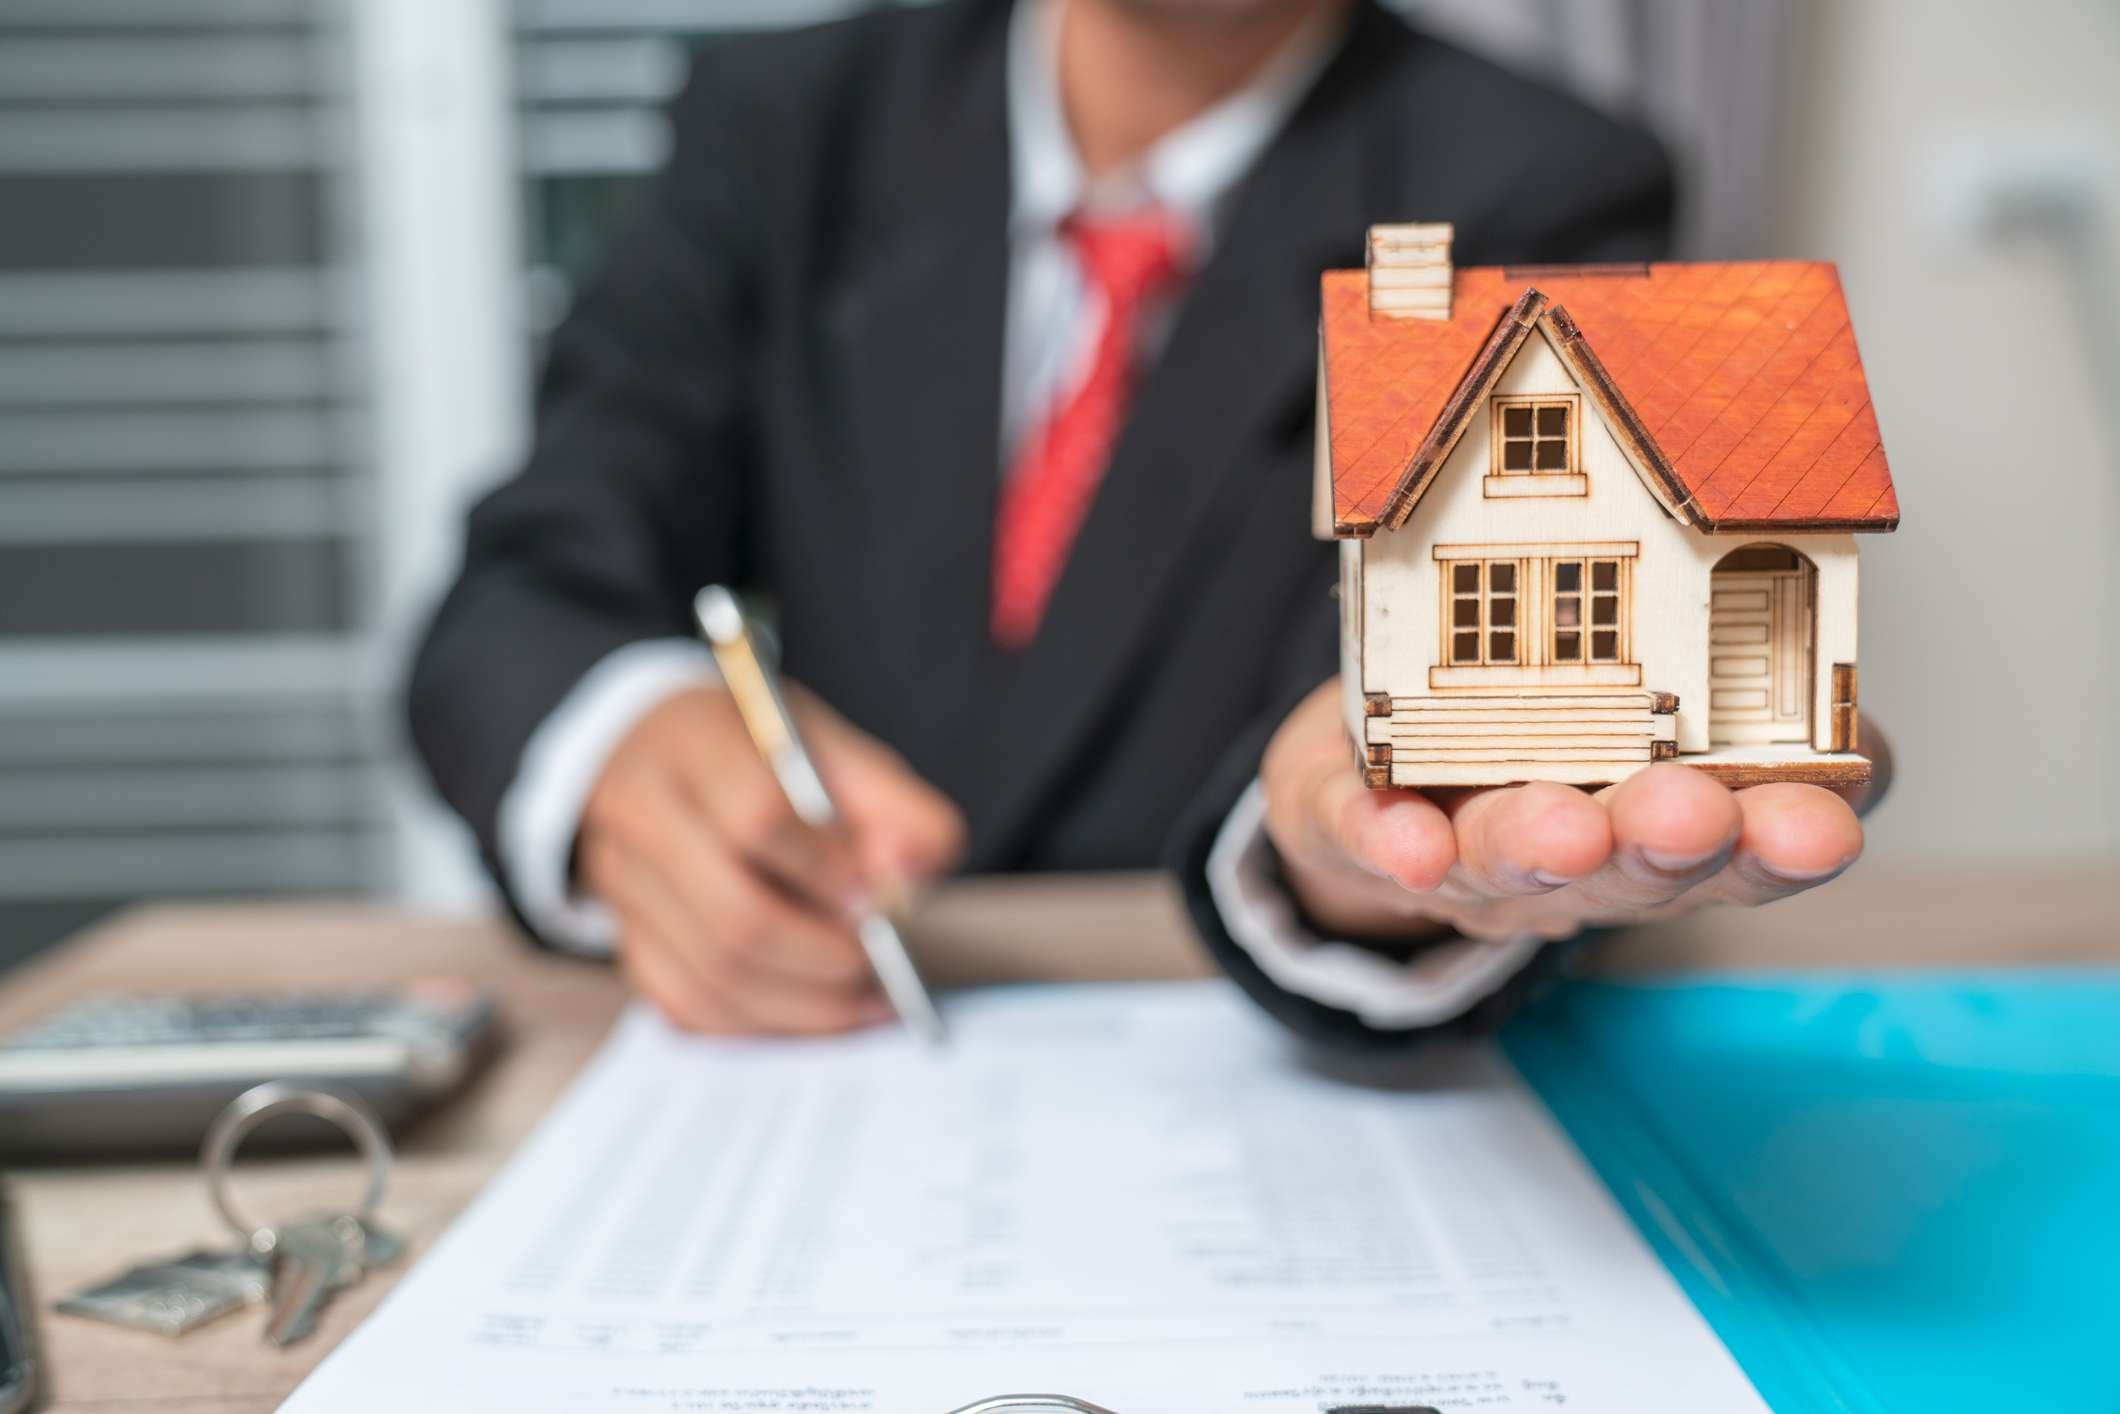 How to Get a Mortgage When Self Employed